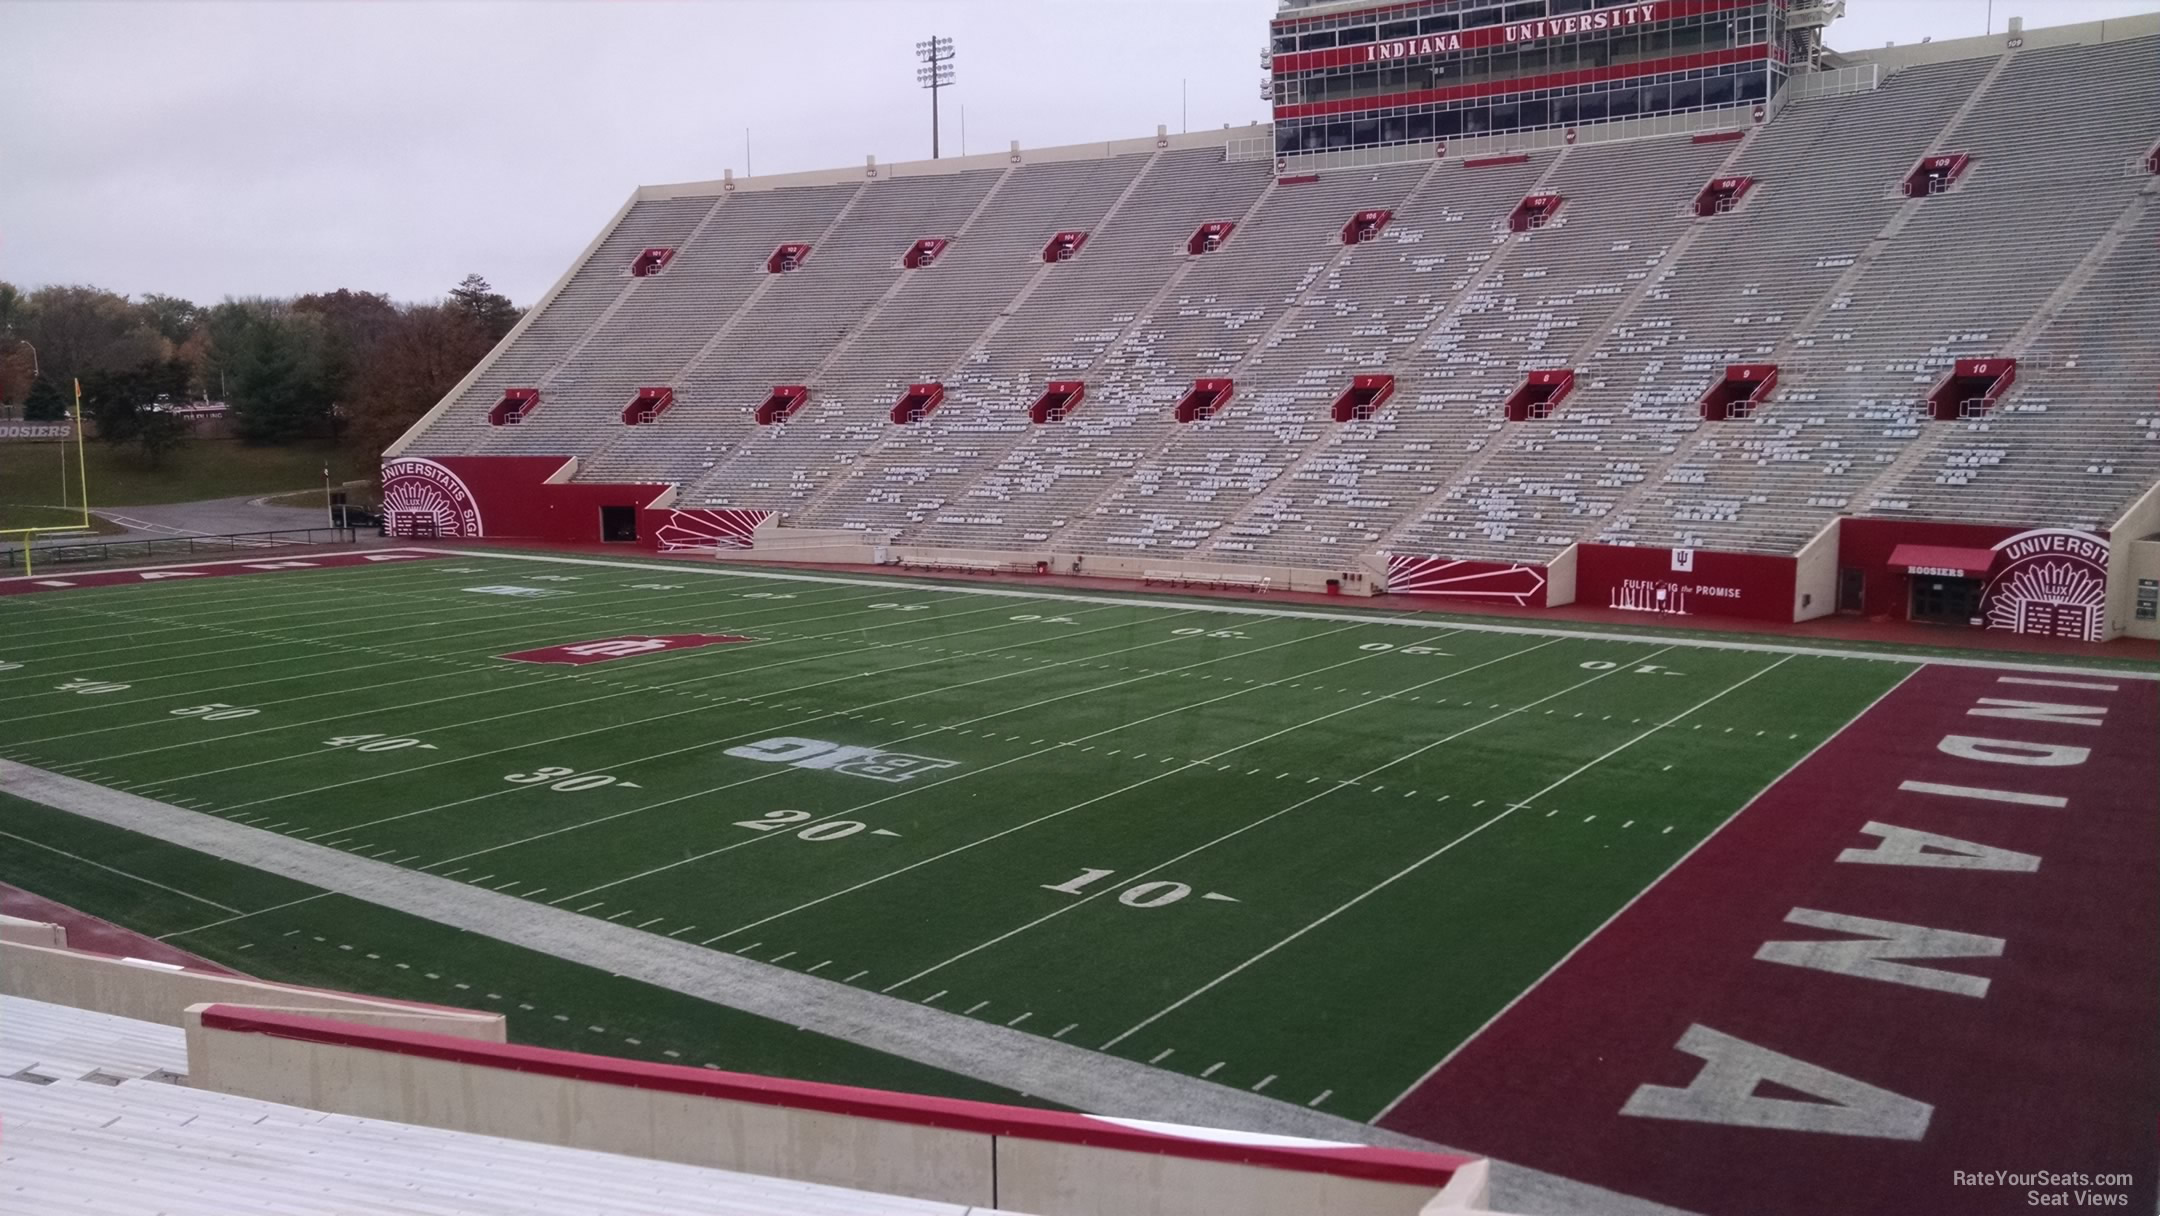 Seat View for Memorial Stadium - IN Section 22, Row 30